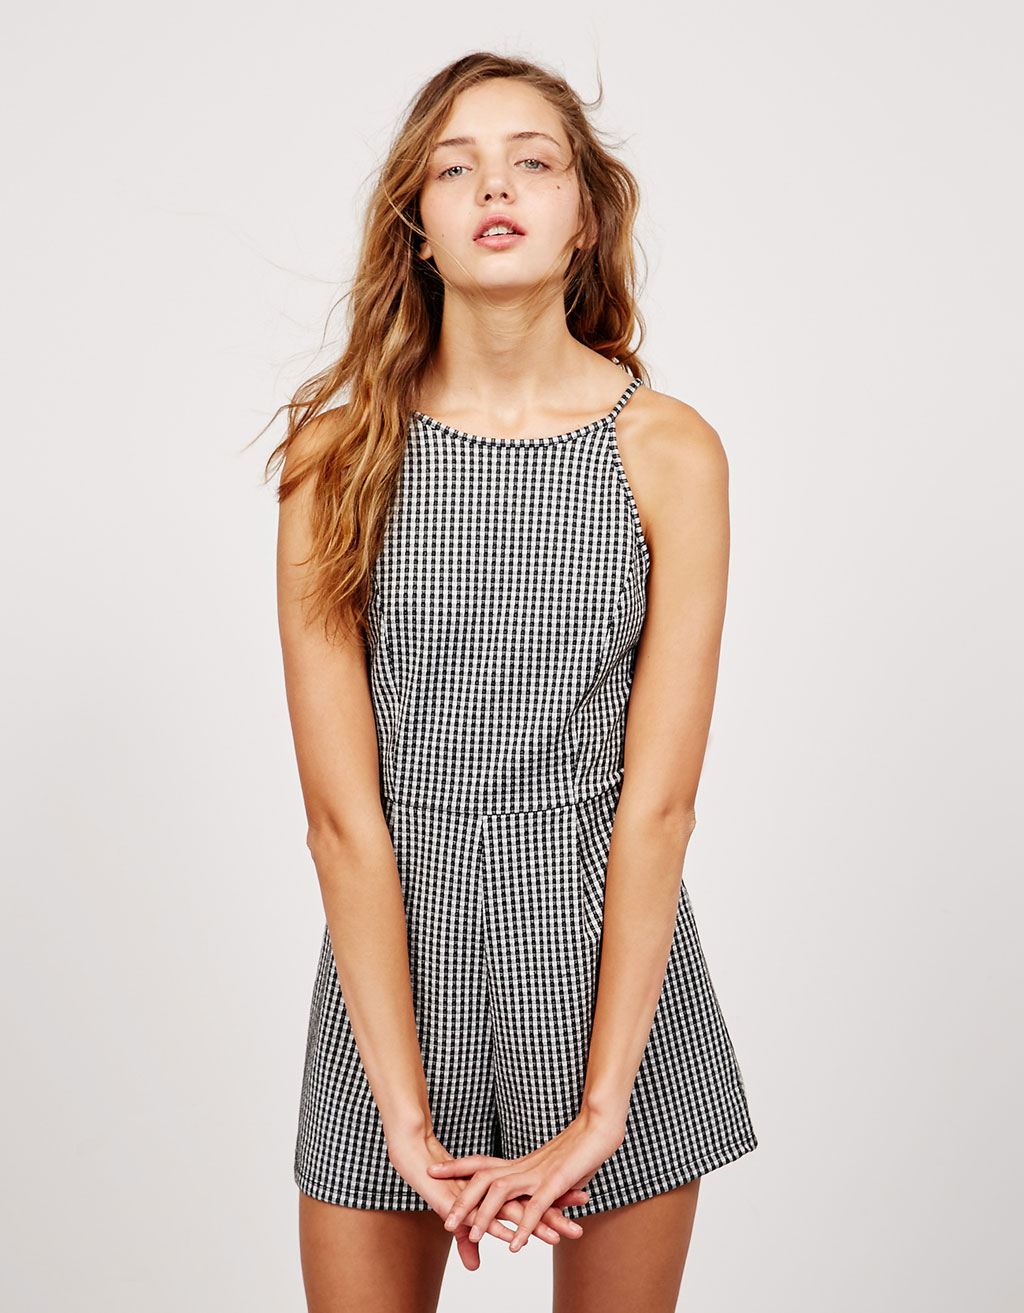 BSK checked gingham jumpsuit